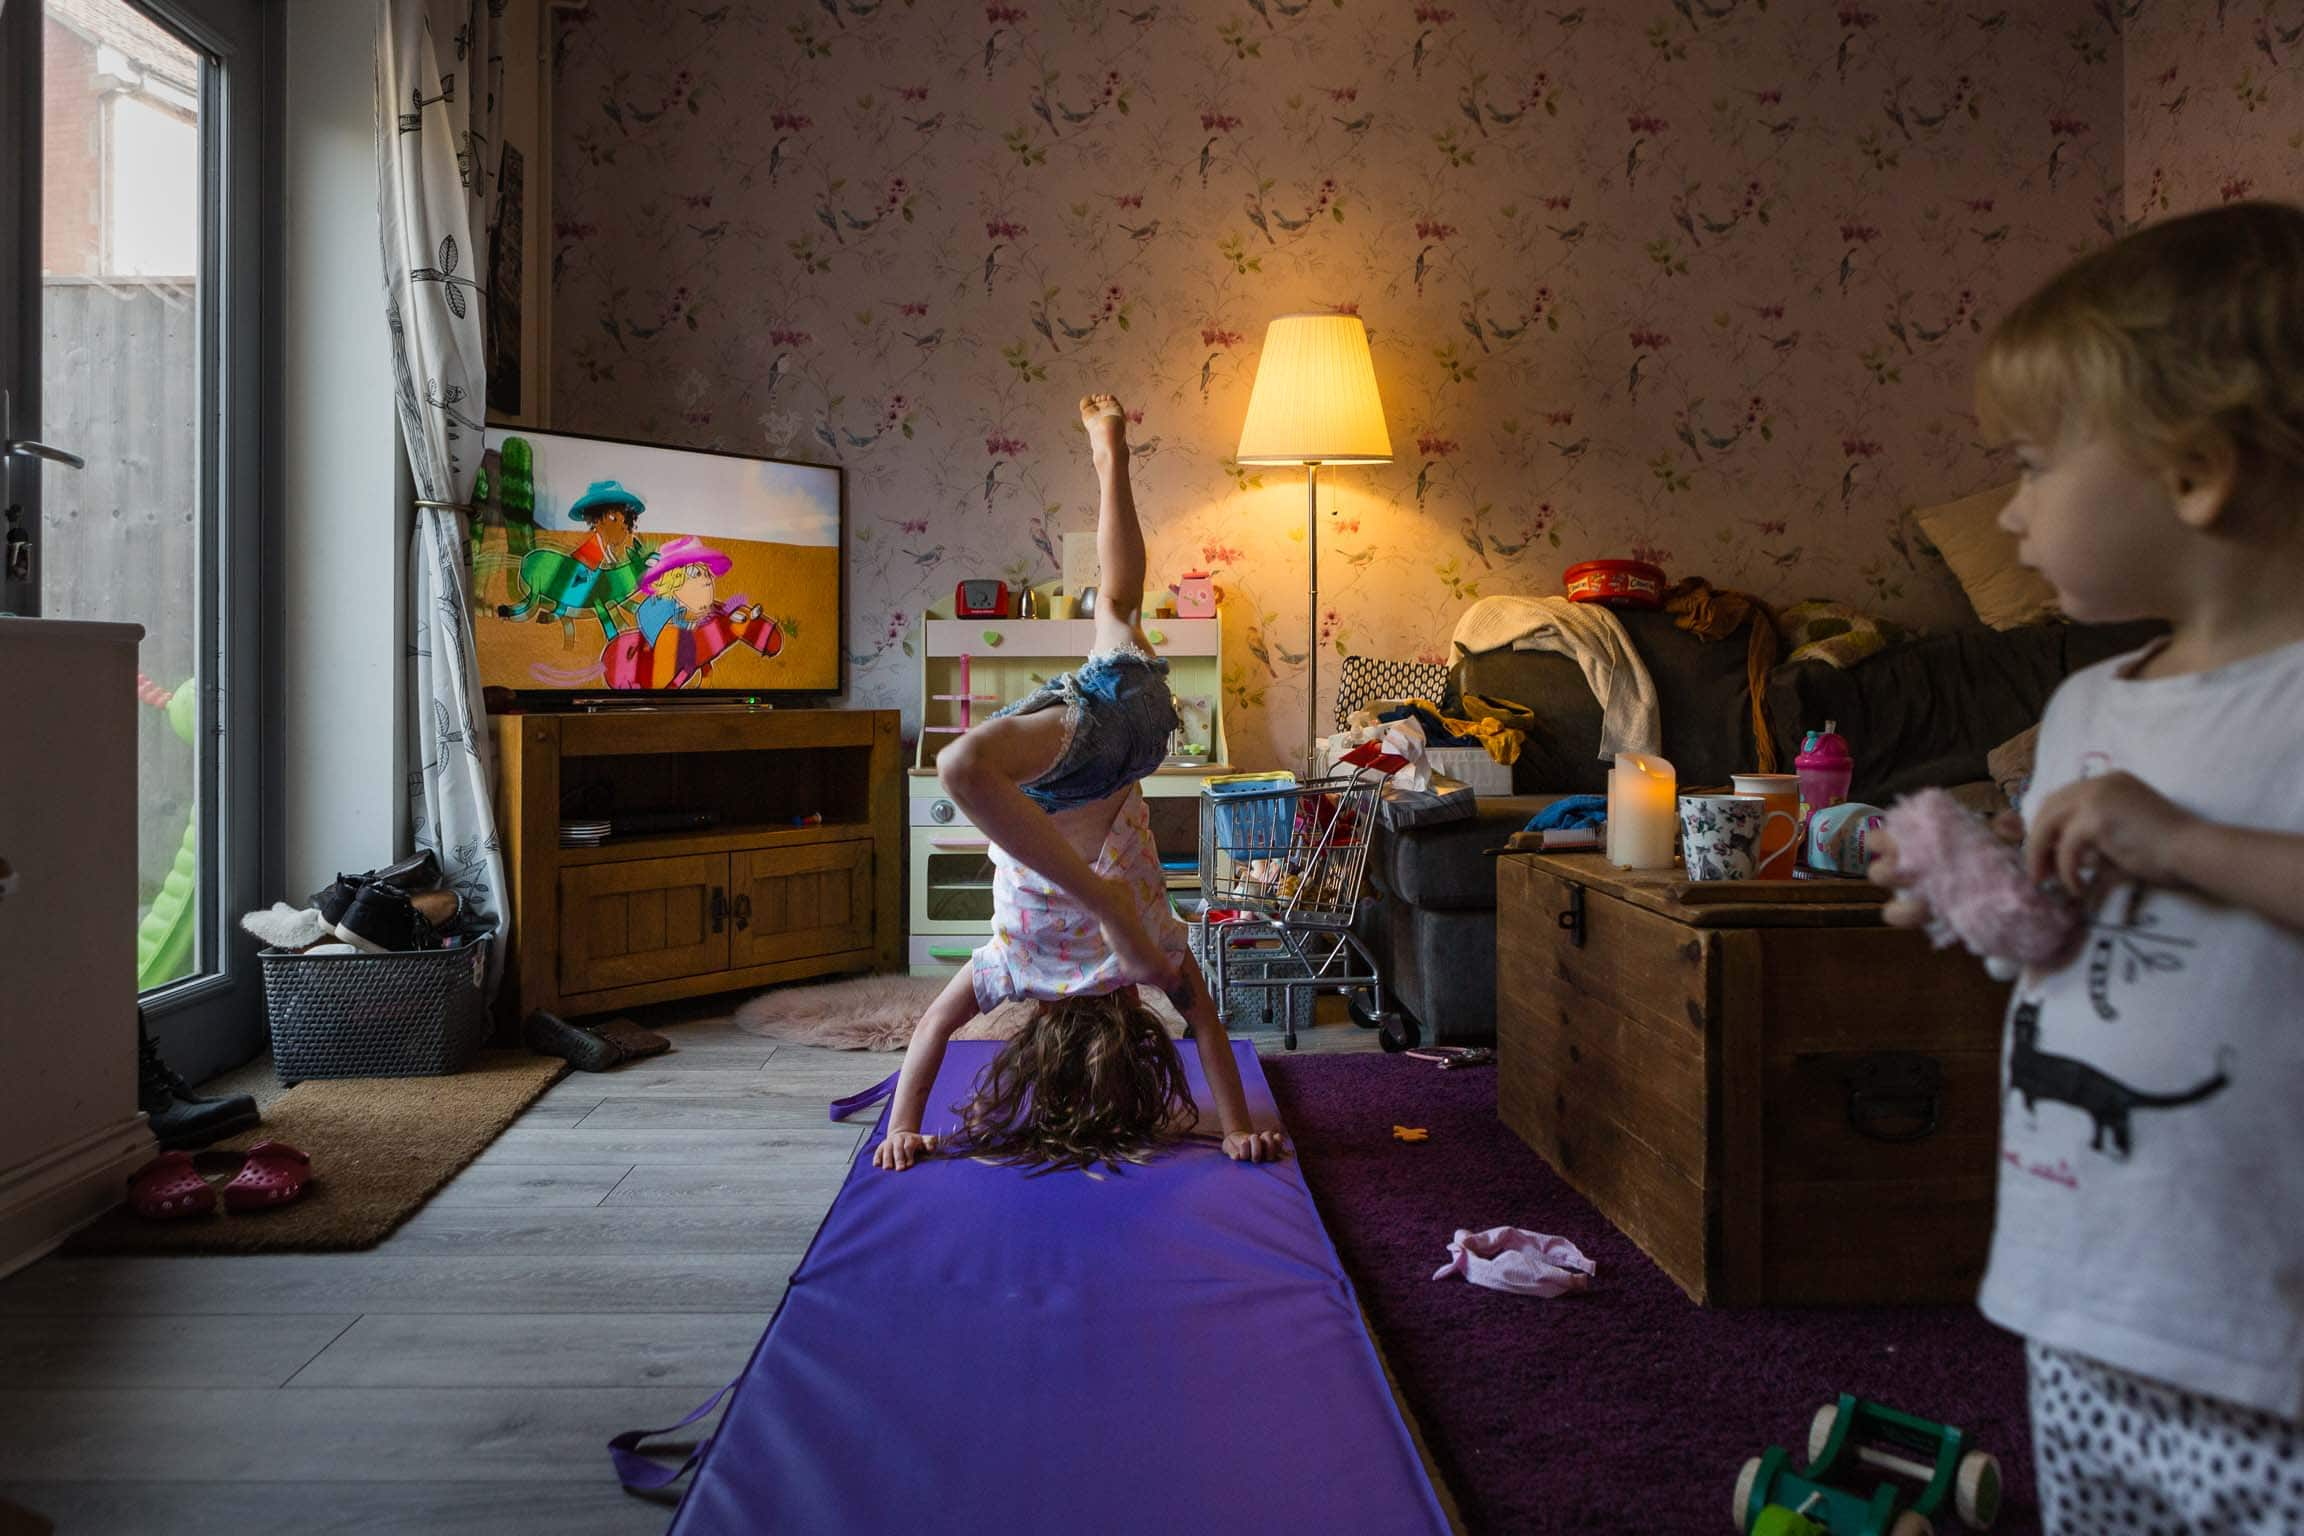 Little girl doing hand stand in living room | Bath Family Photography